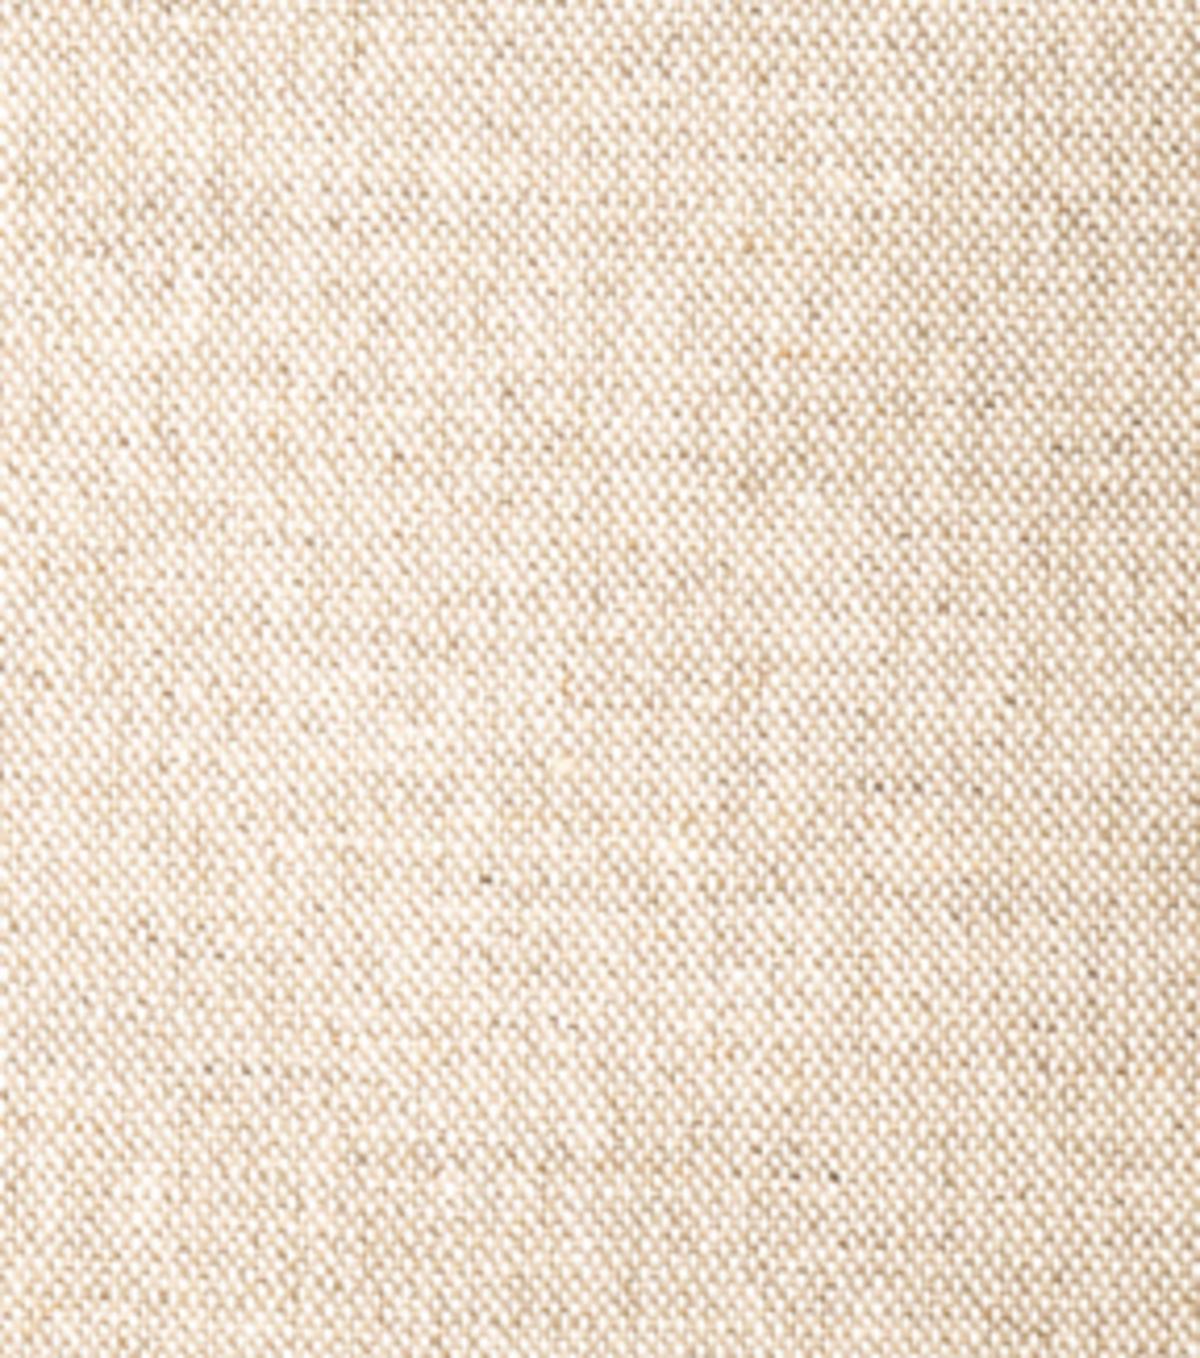 Home Decor 8\u0022x8\u0022 Fabric Swatch-Signature Series Linen-Cotton Natural